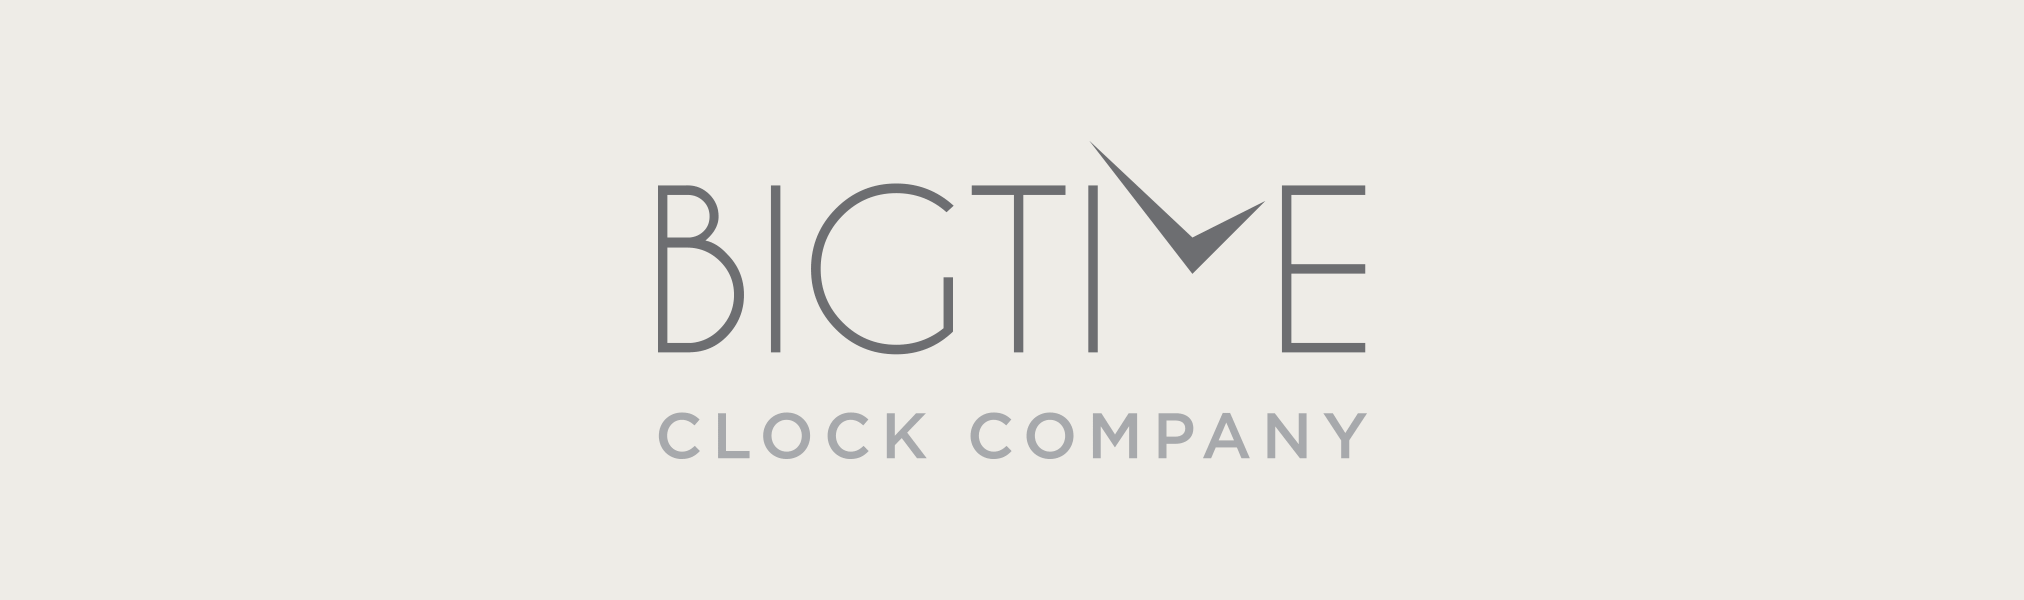 Bigtime Clock Company